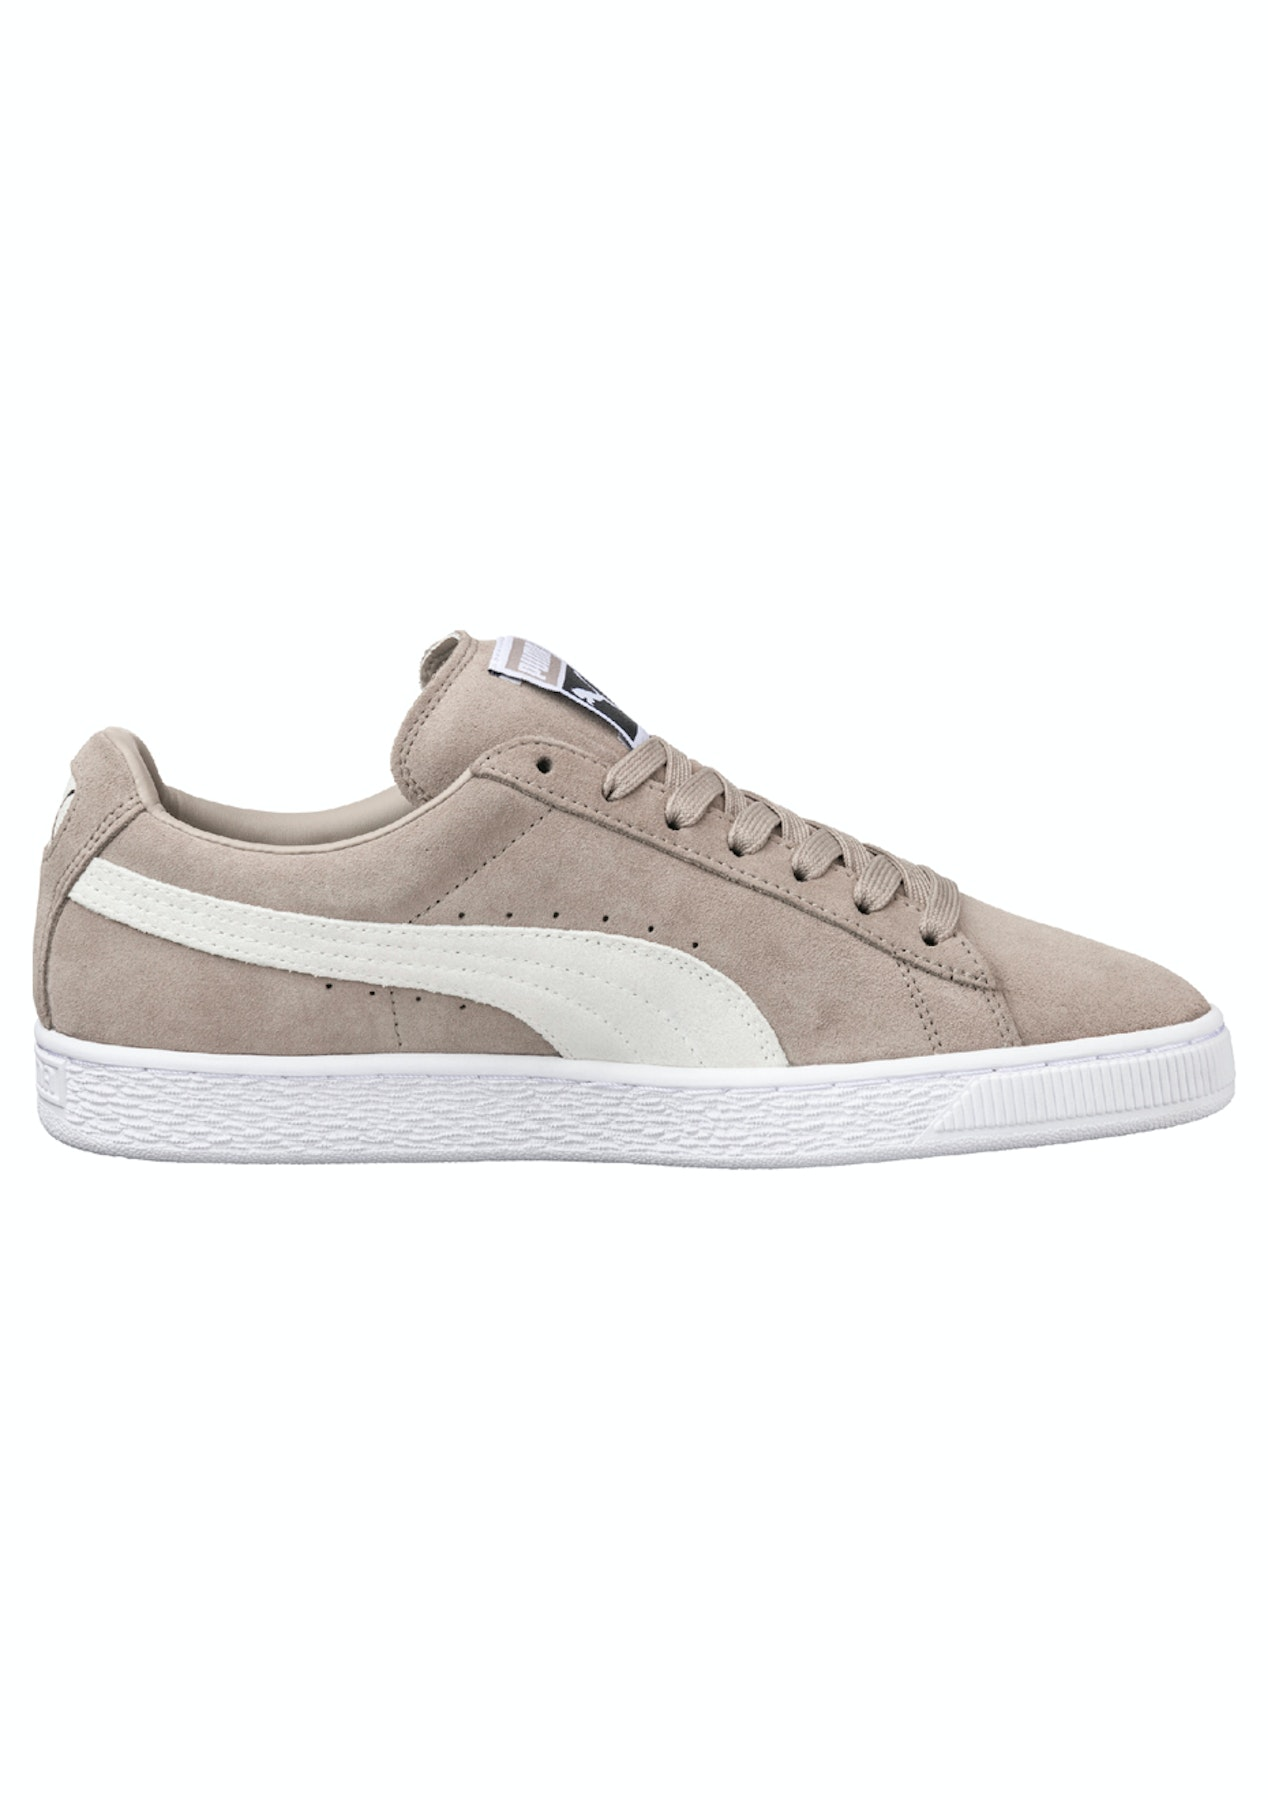 d7db8a2353f Puma Womens - Suede Classic + - Vintage Khaki - Womens Activewear Outlet -  Onceit